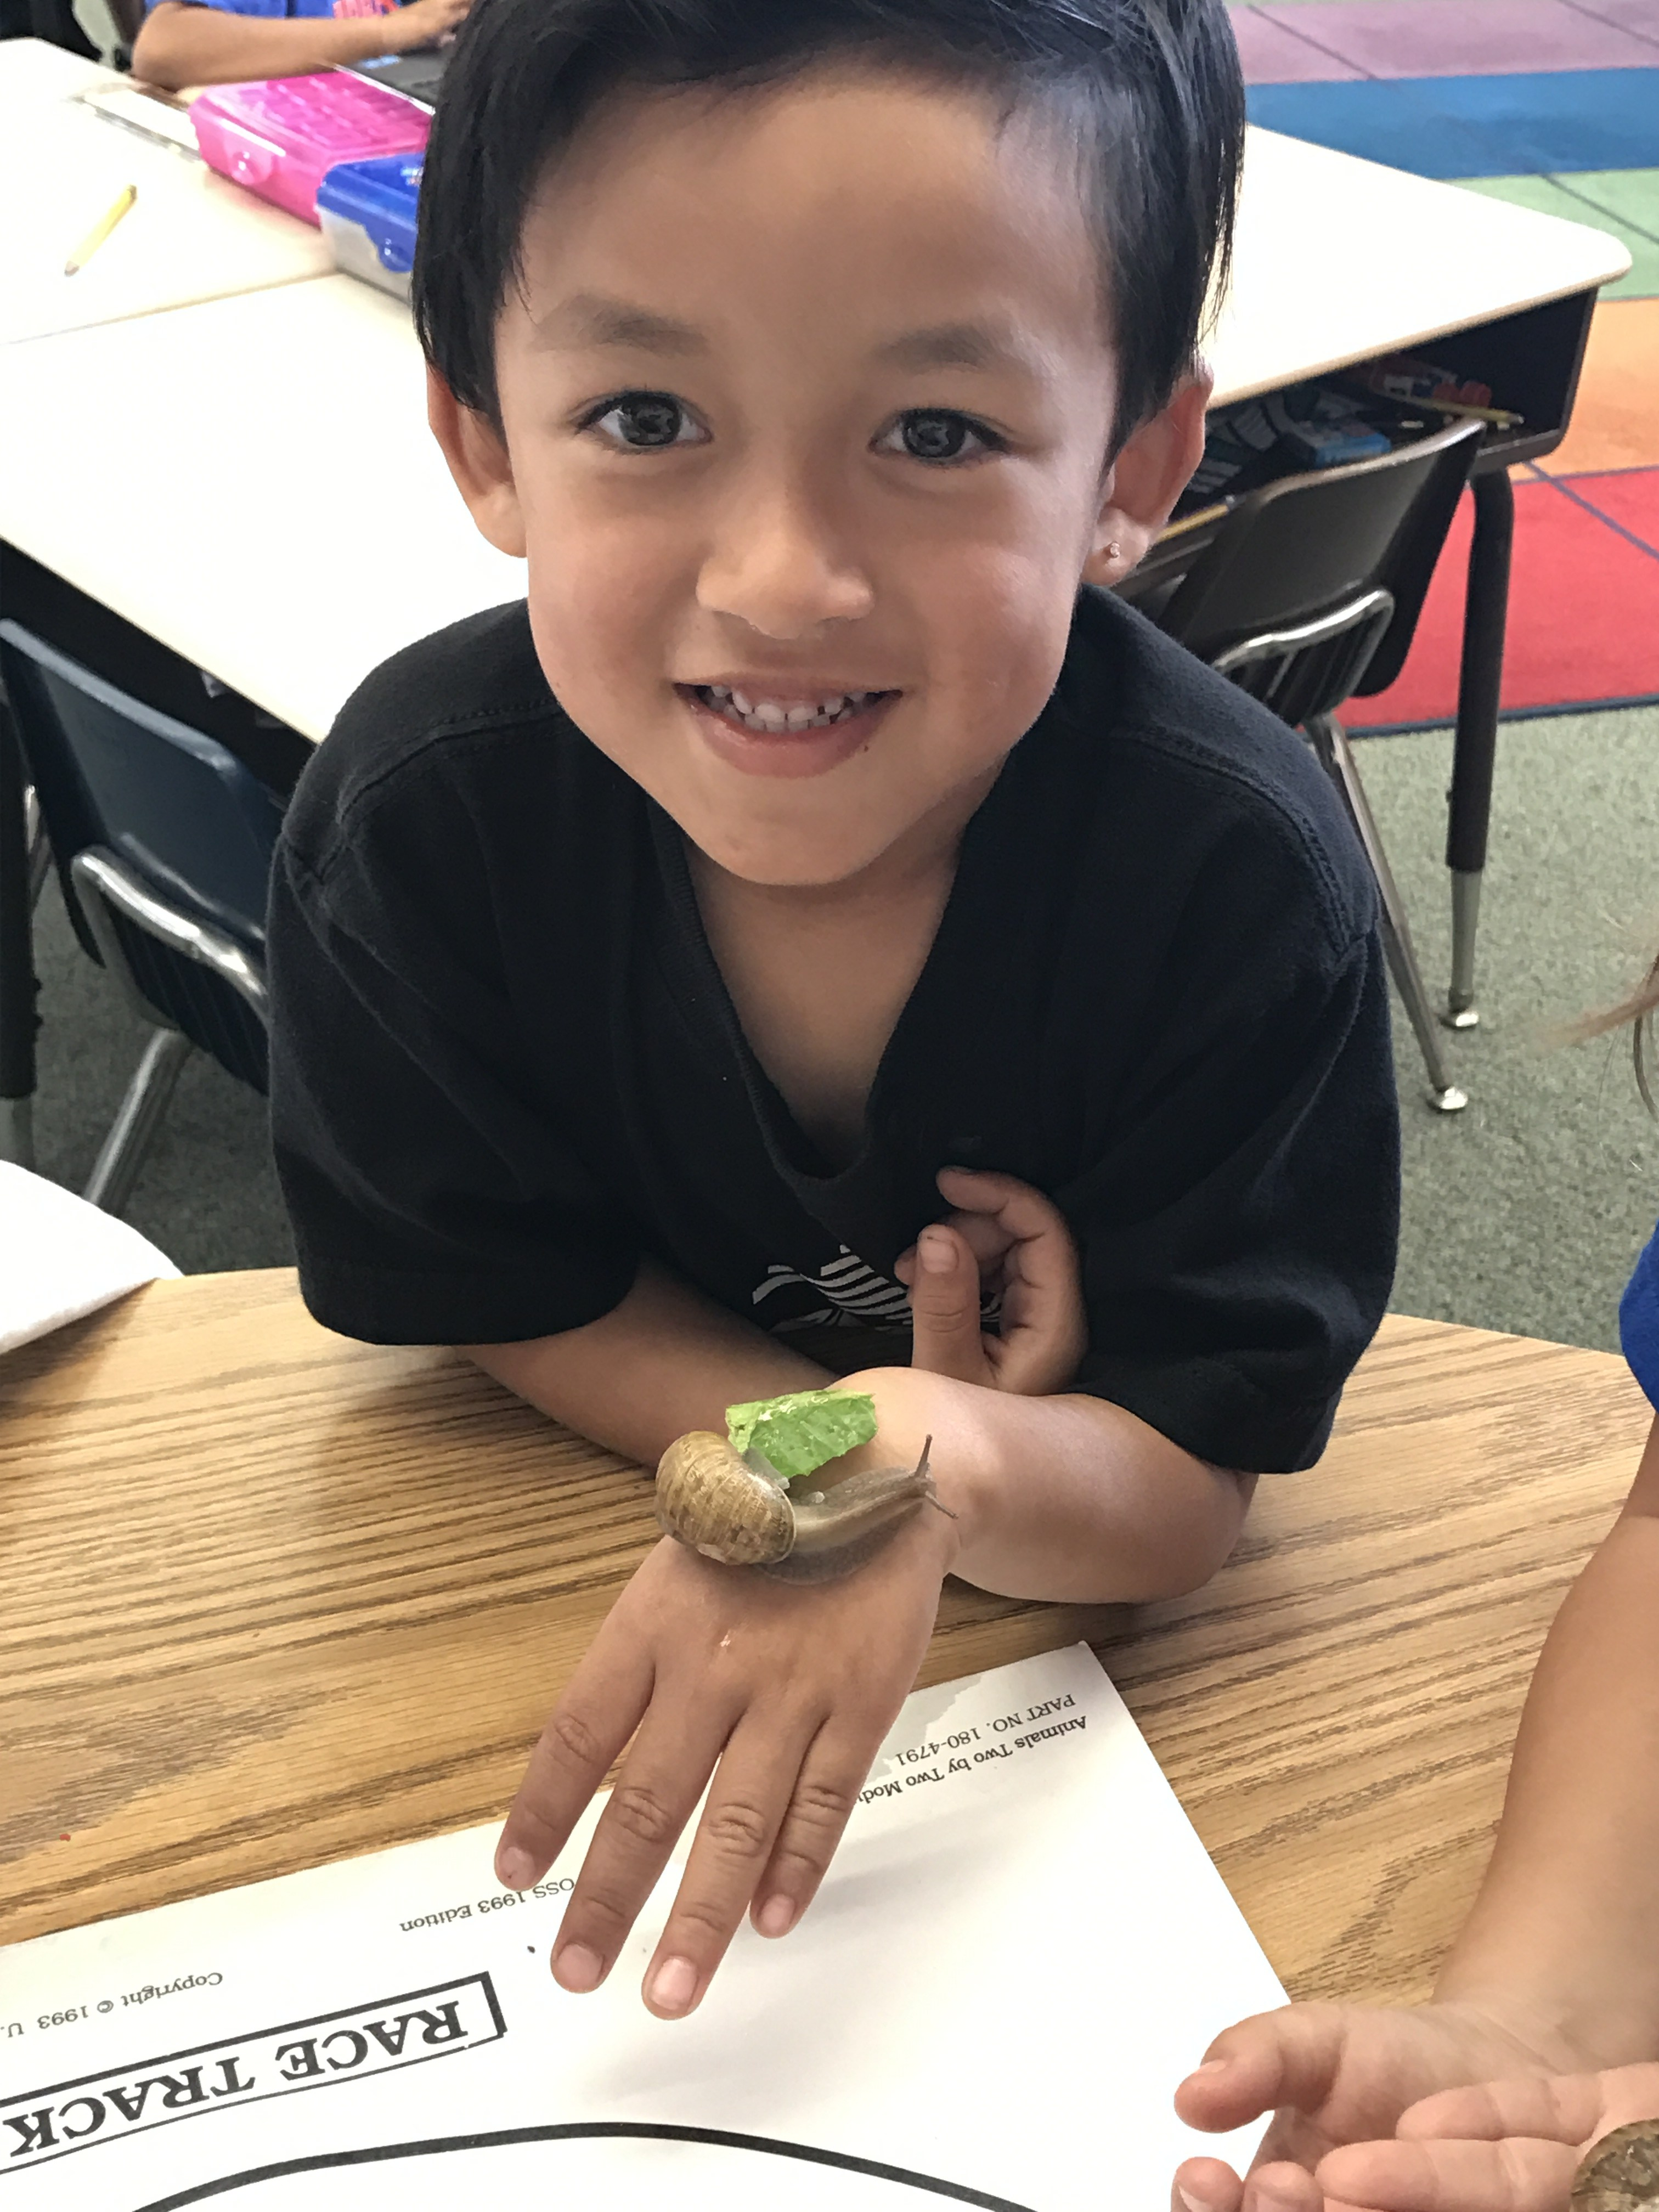 Student exploring feeding a snail on his hand